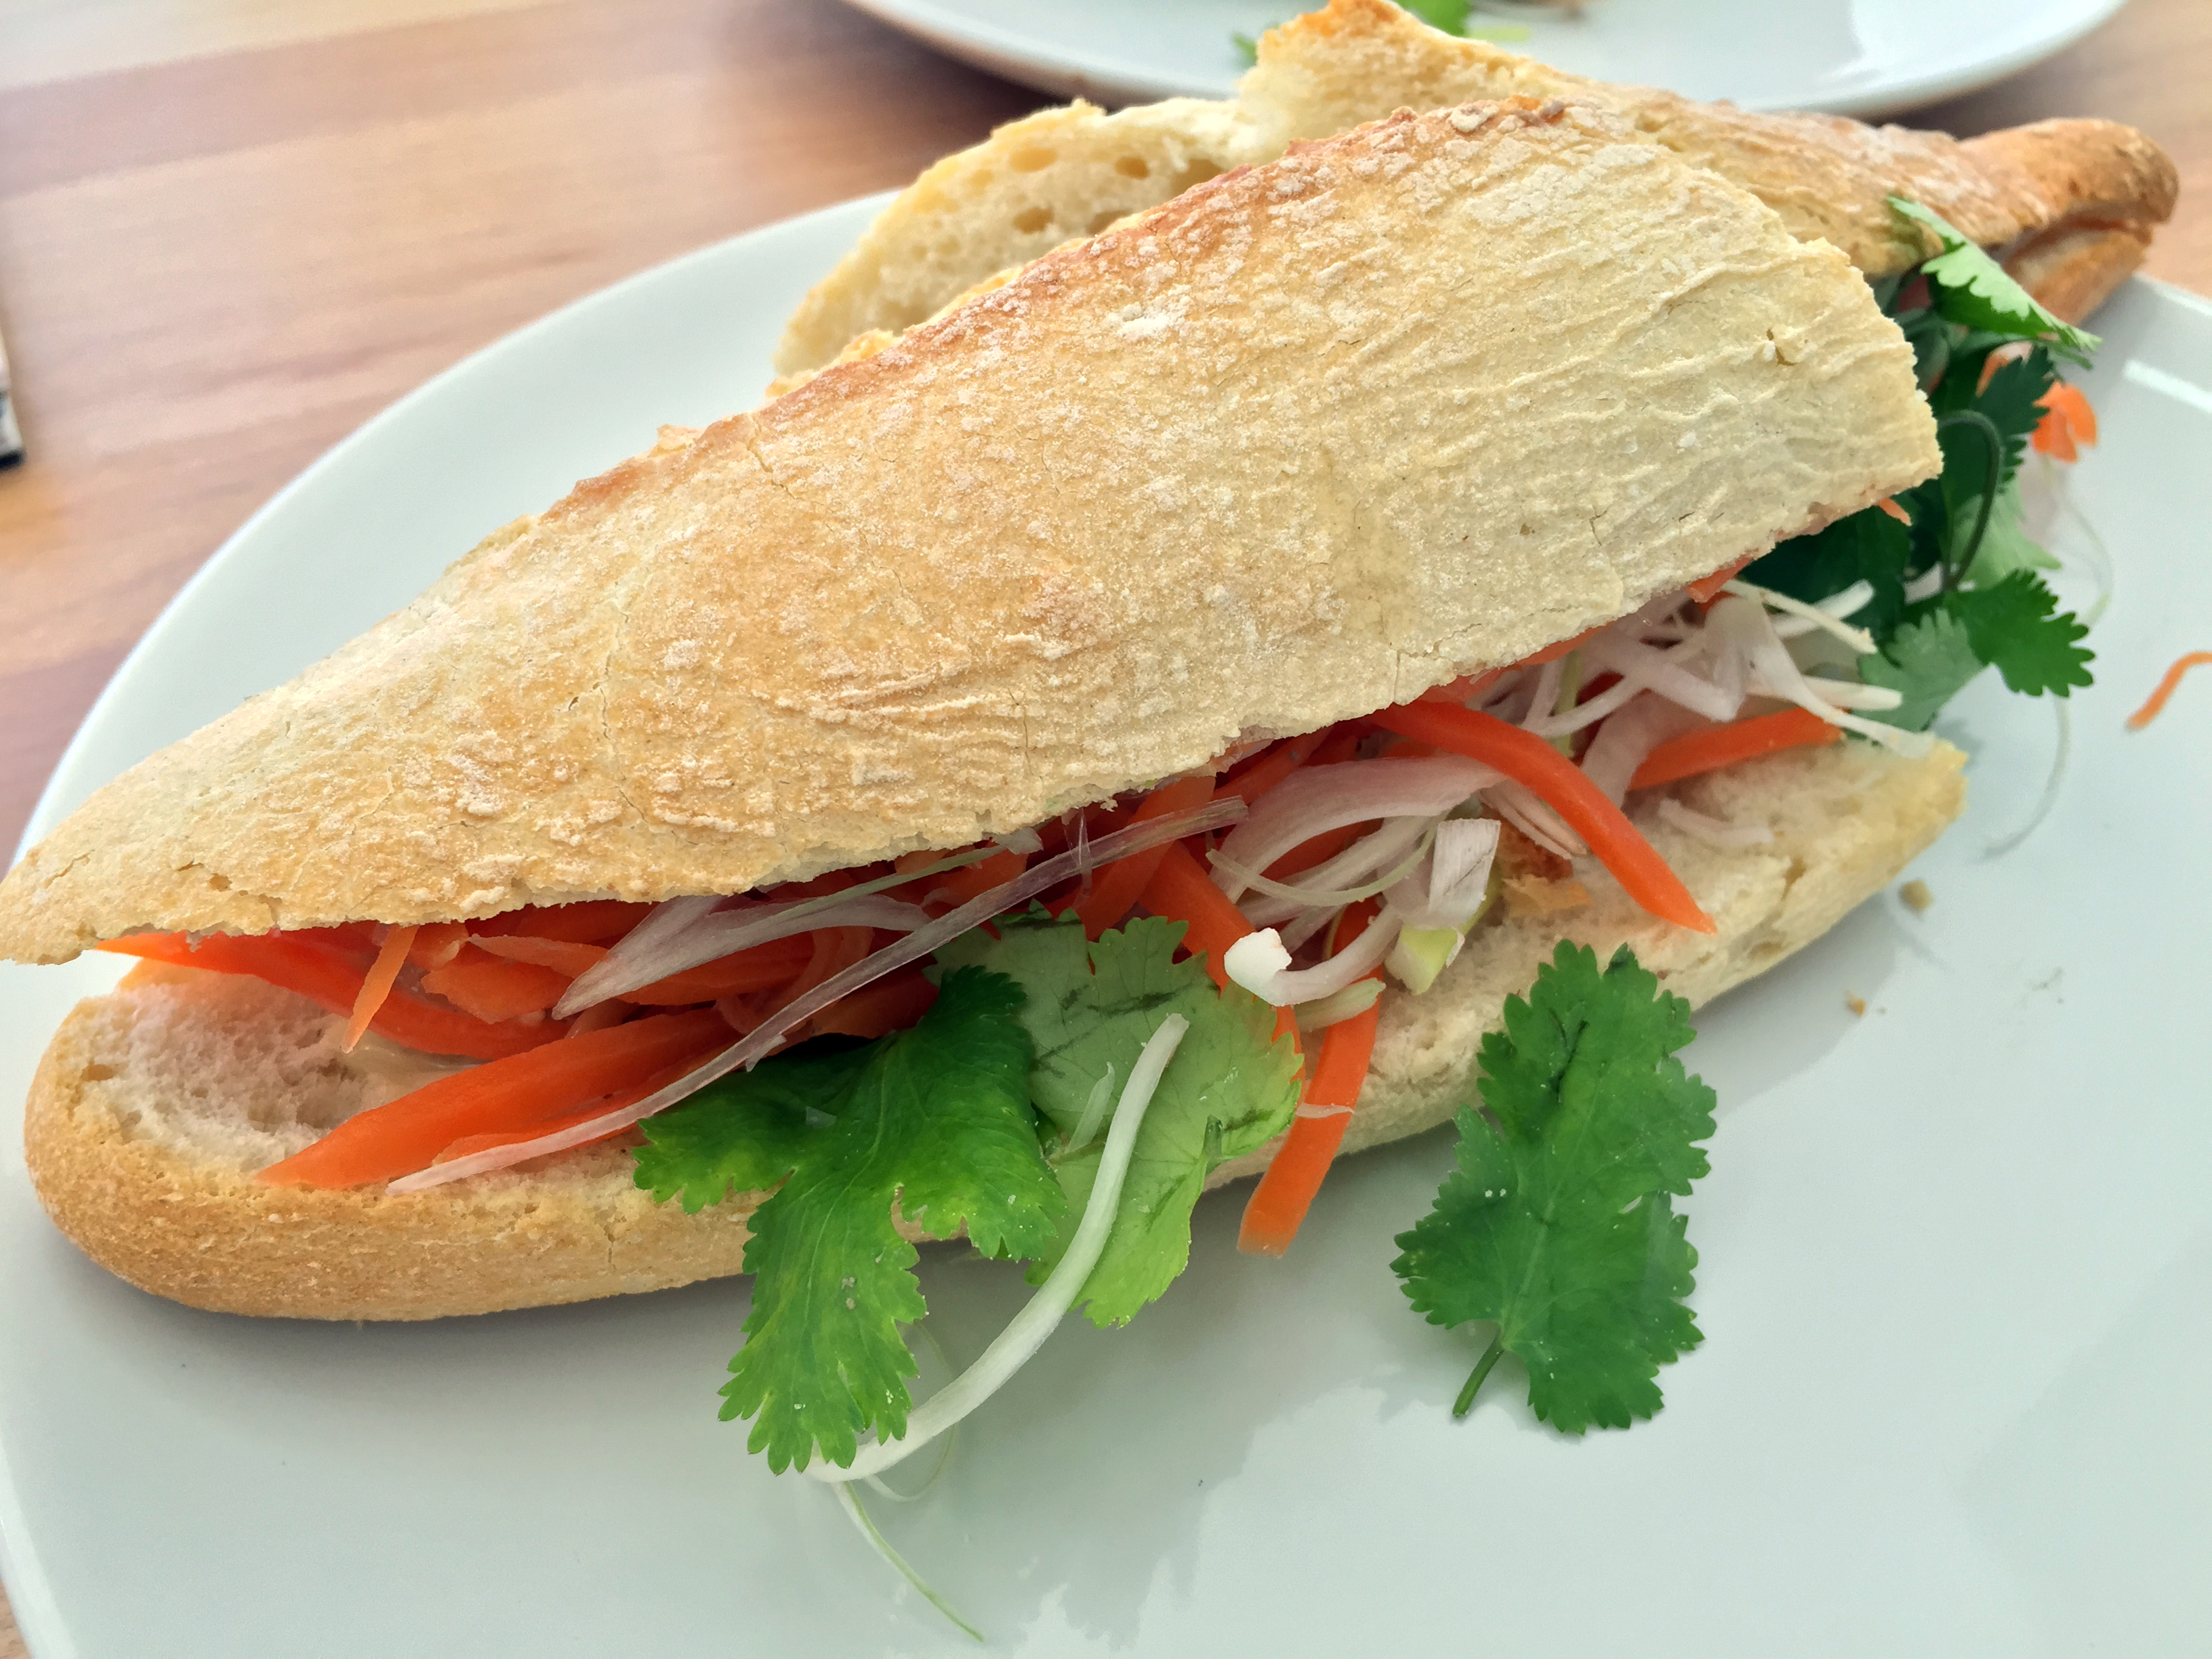 banh mi dog bacon banh mi steak banh mi recipe lemongrass chicken banh ...